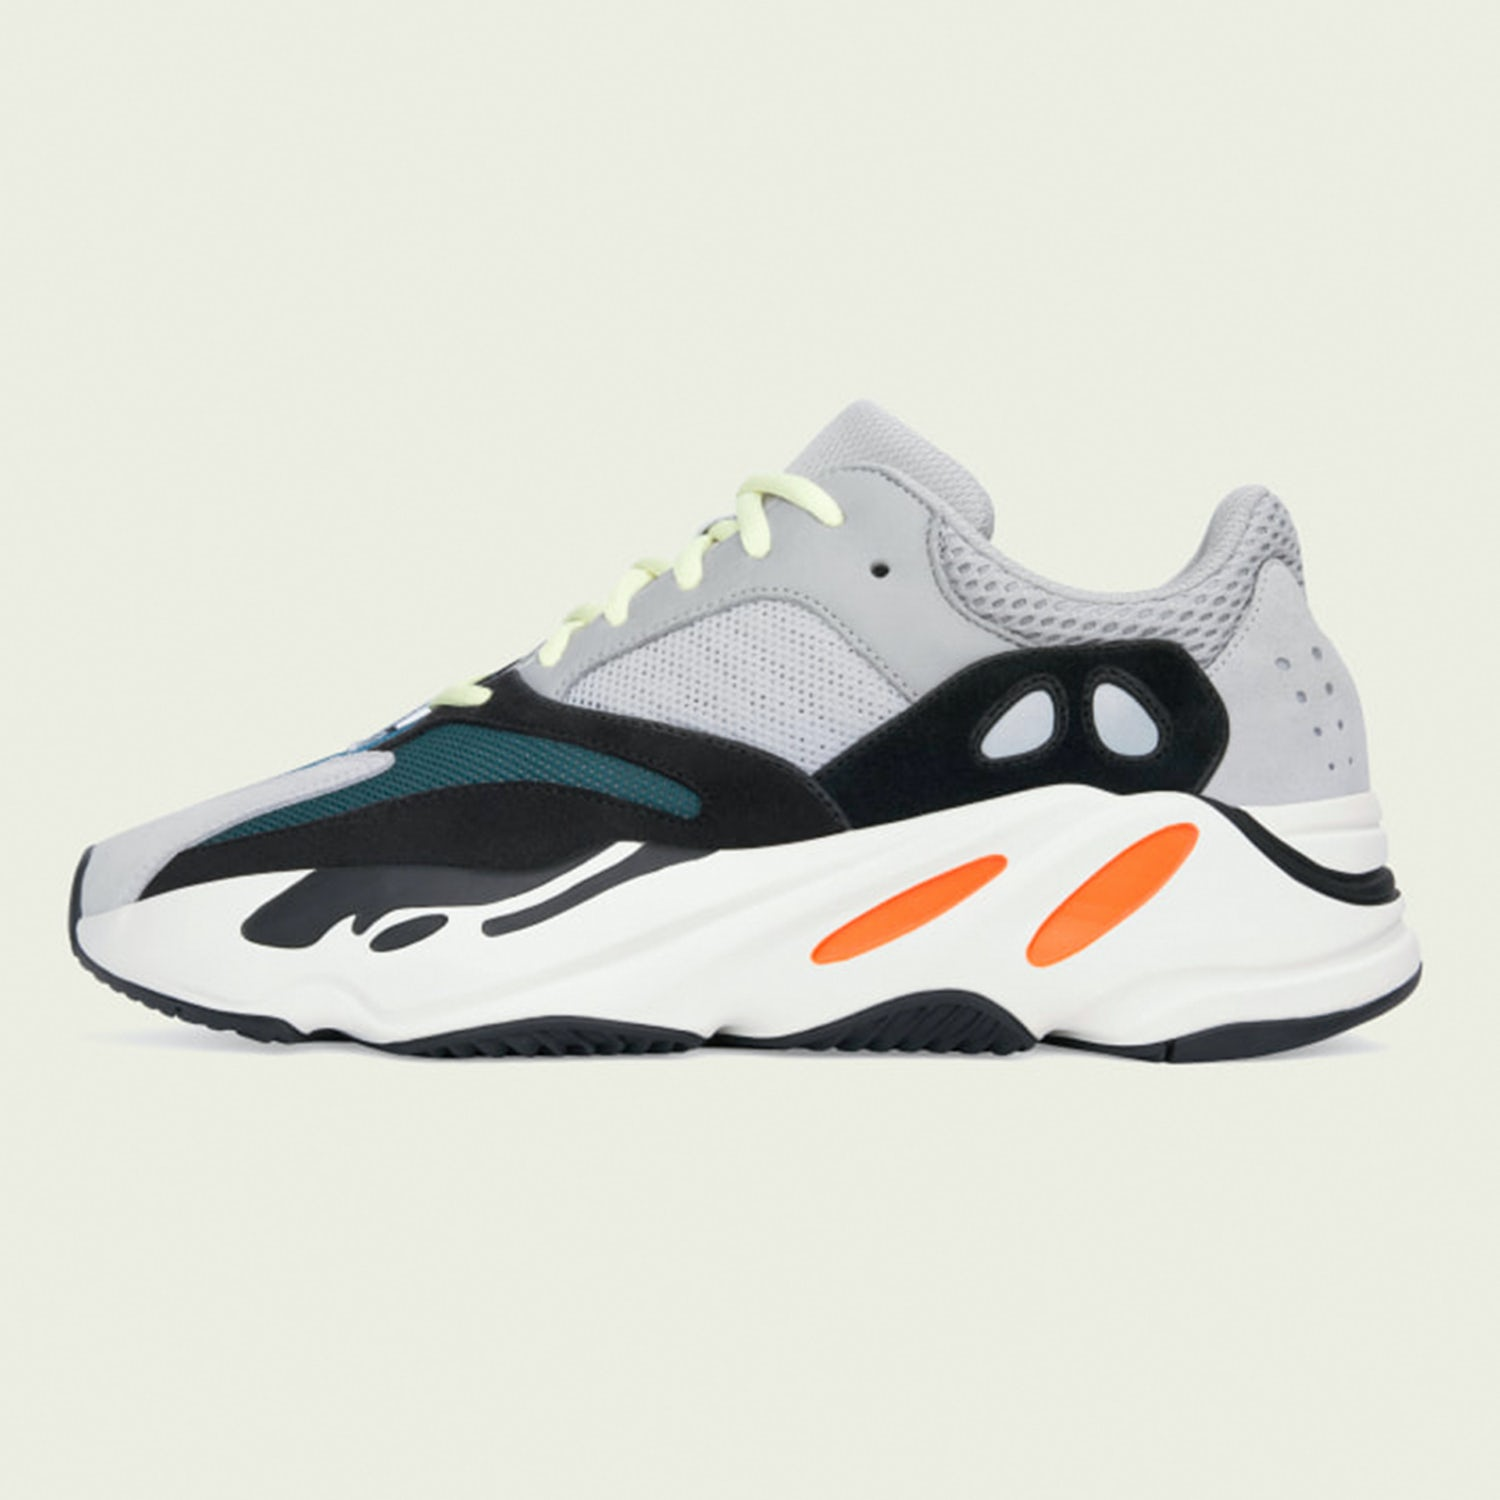 Adidas Yeezy Boost 700 Wave Runner 1